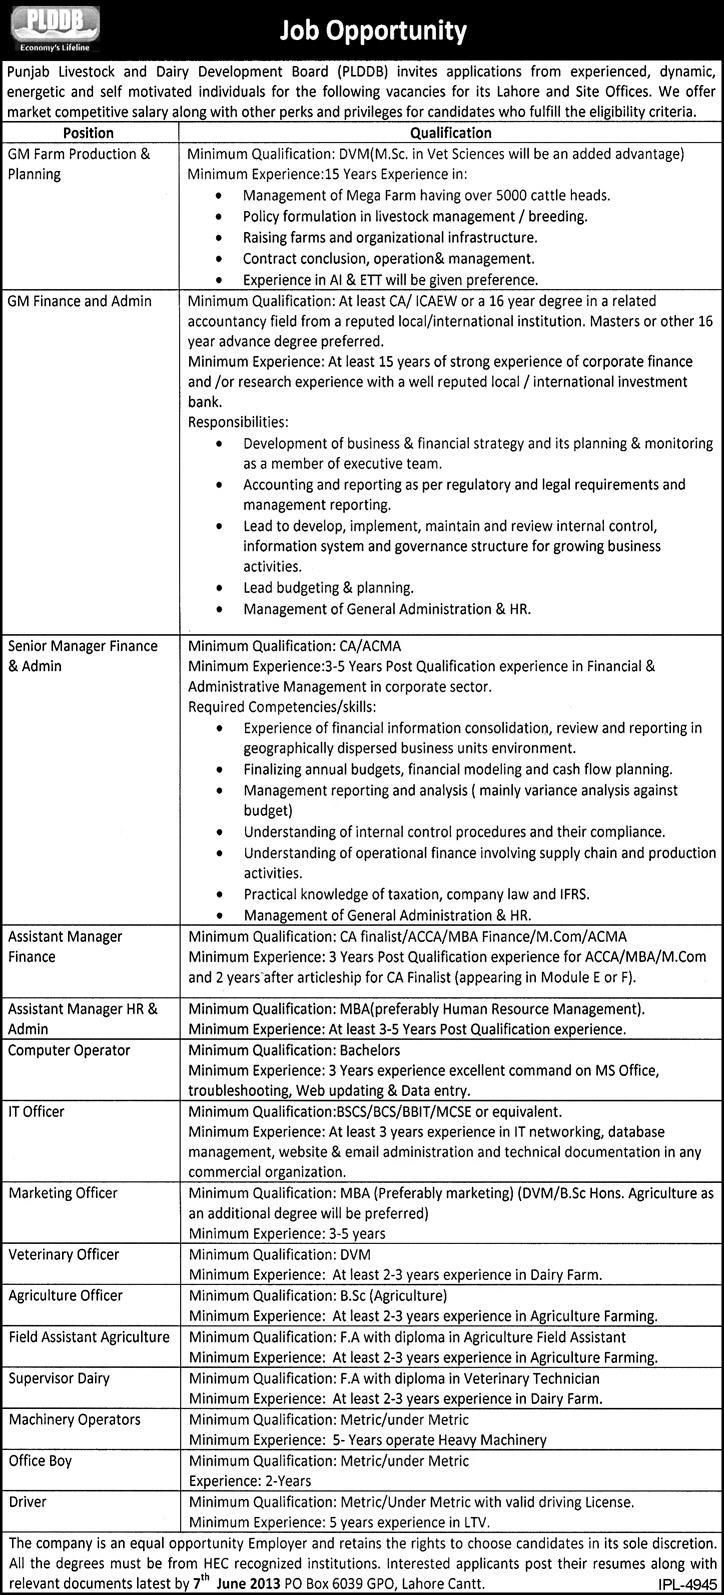 Vacancies in Punjab Livestock & Dairy Development Board, Lahore